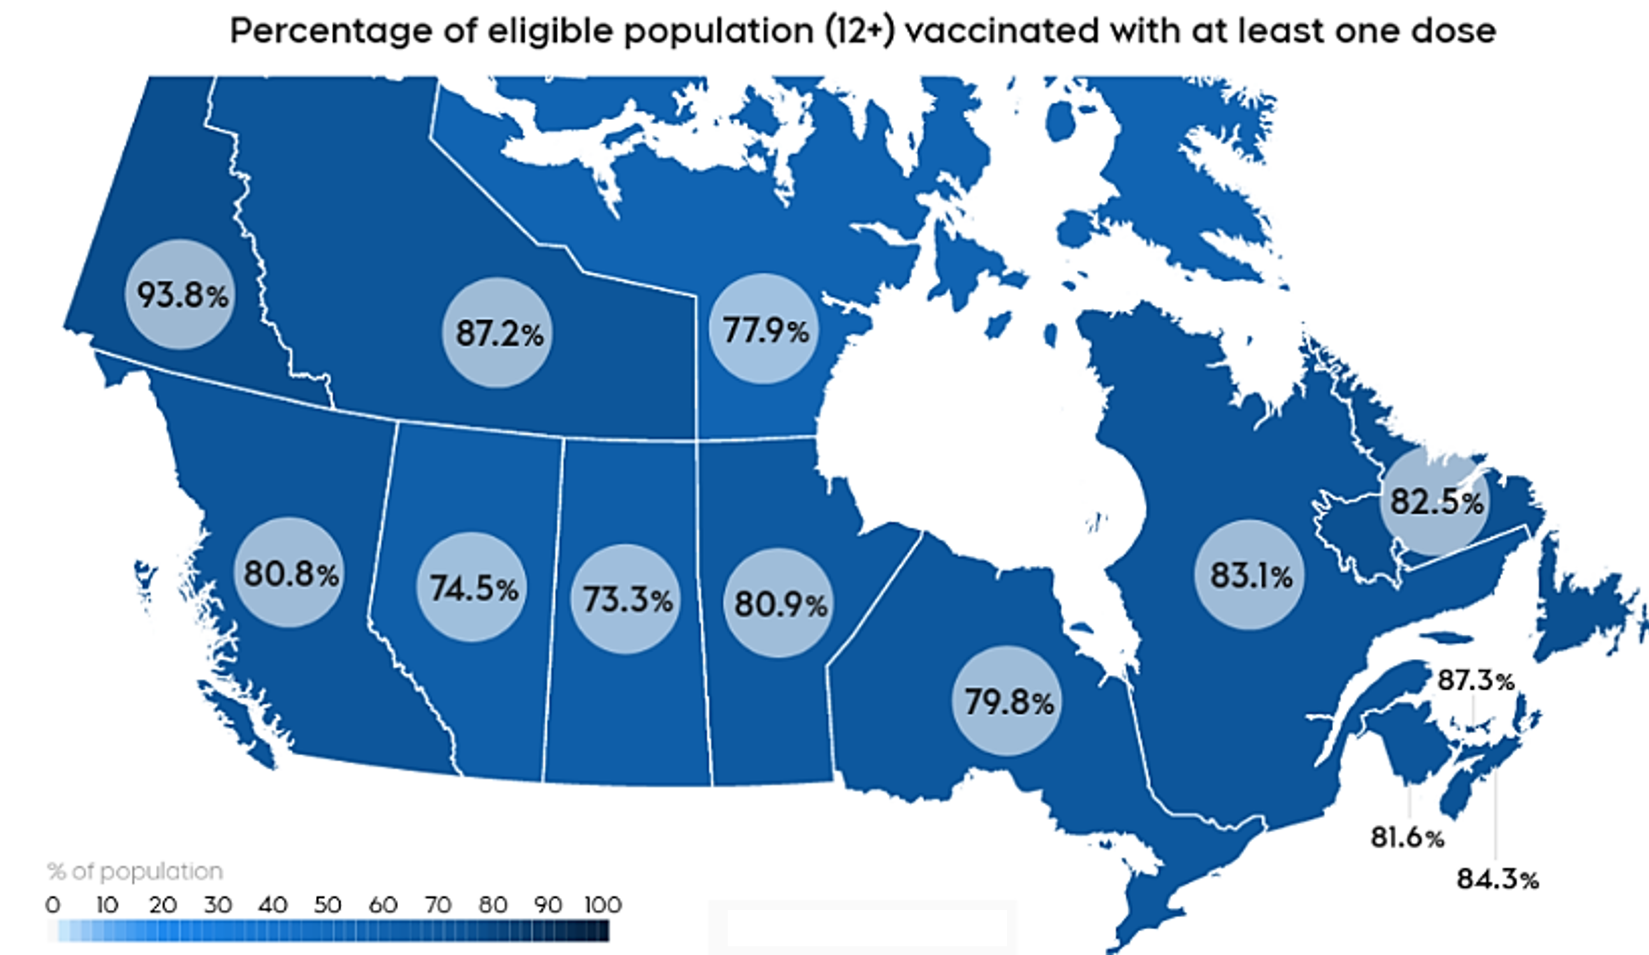 Map-Canada Vaccination Coverage by Province